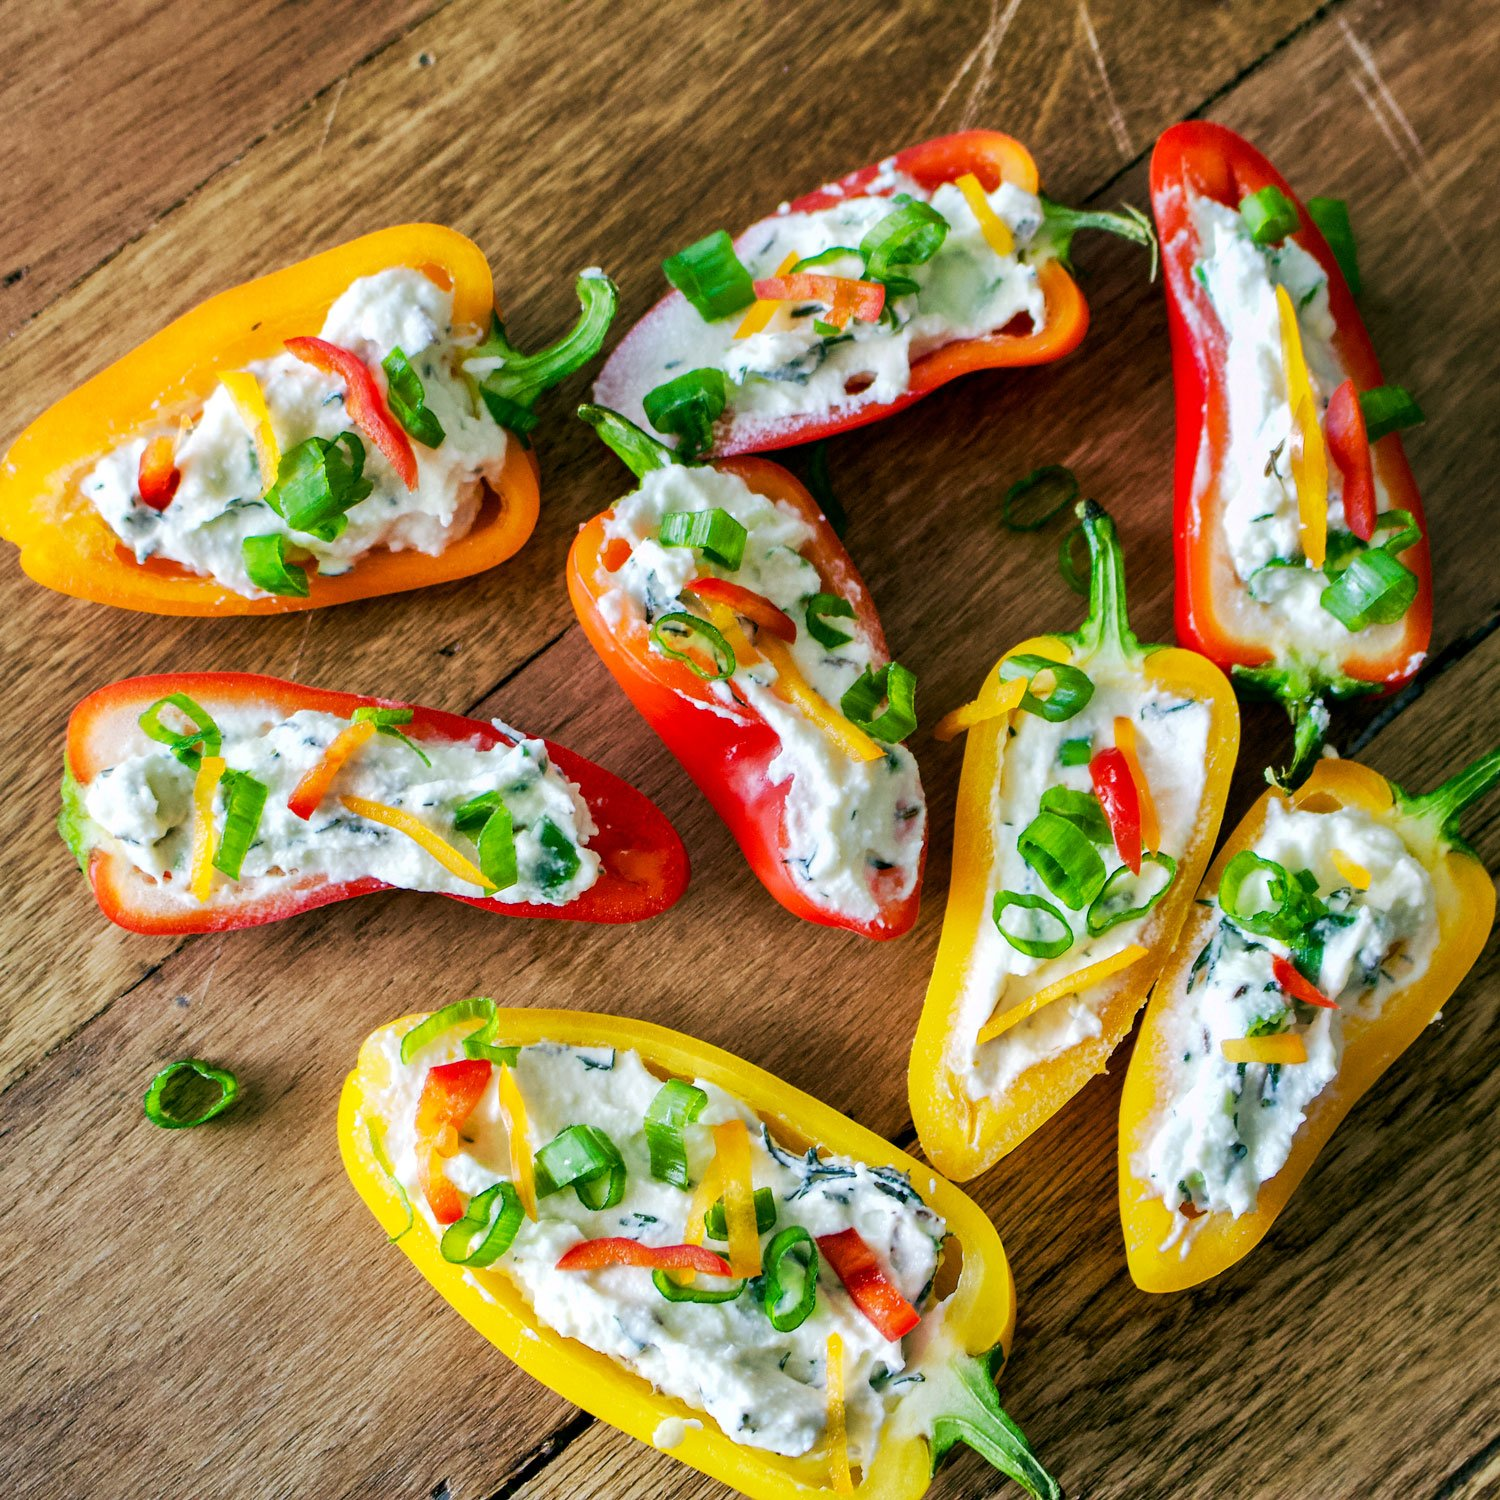 Mini Peppers Stuffed With Farmer Cheese-Are you looking for a fun&festive little appetizer to make for your next party? Here is a recipe that can be made ahead. Mini peppers stuffed with farmer cheese is a super easy to put together recipe that is delicious and also beautiful on the table.